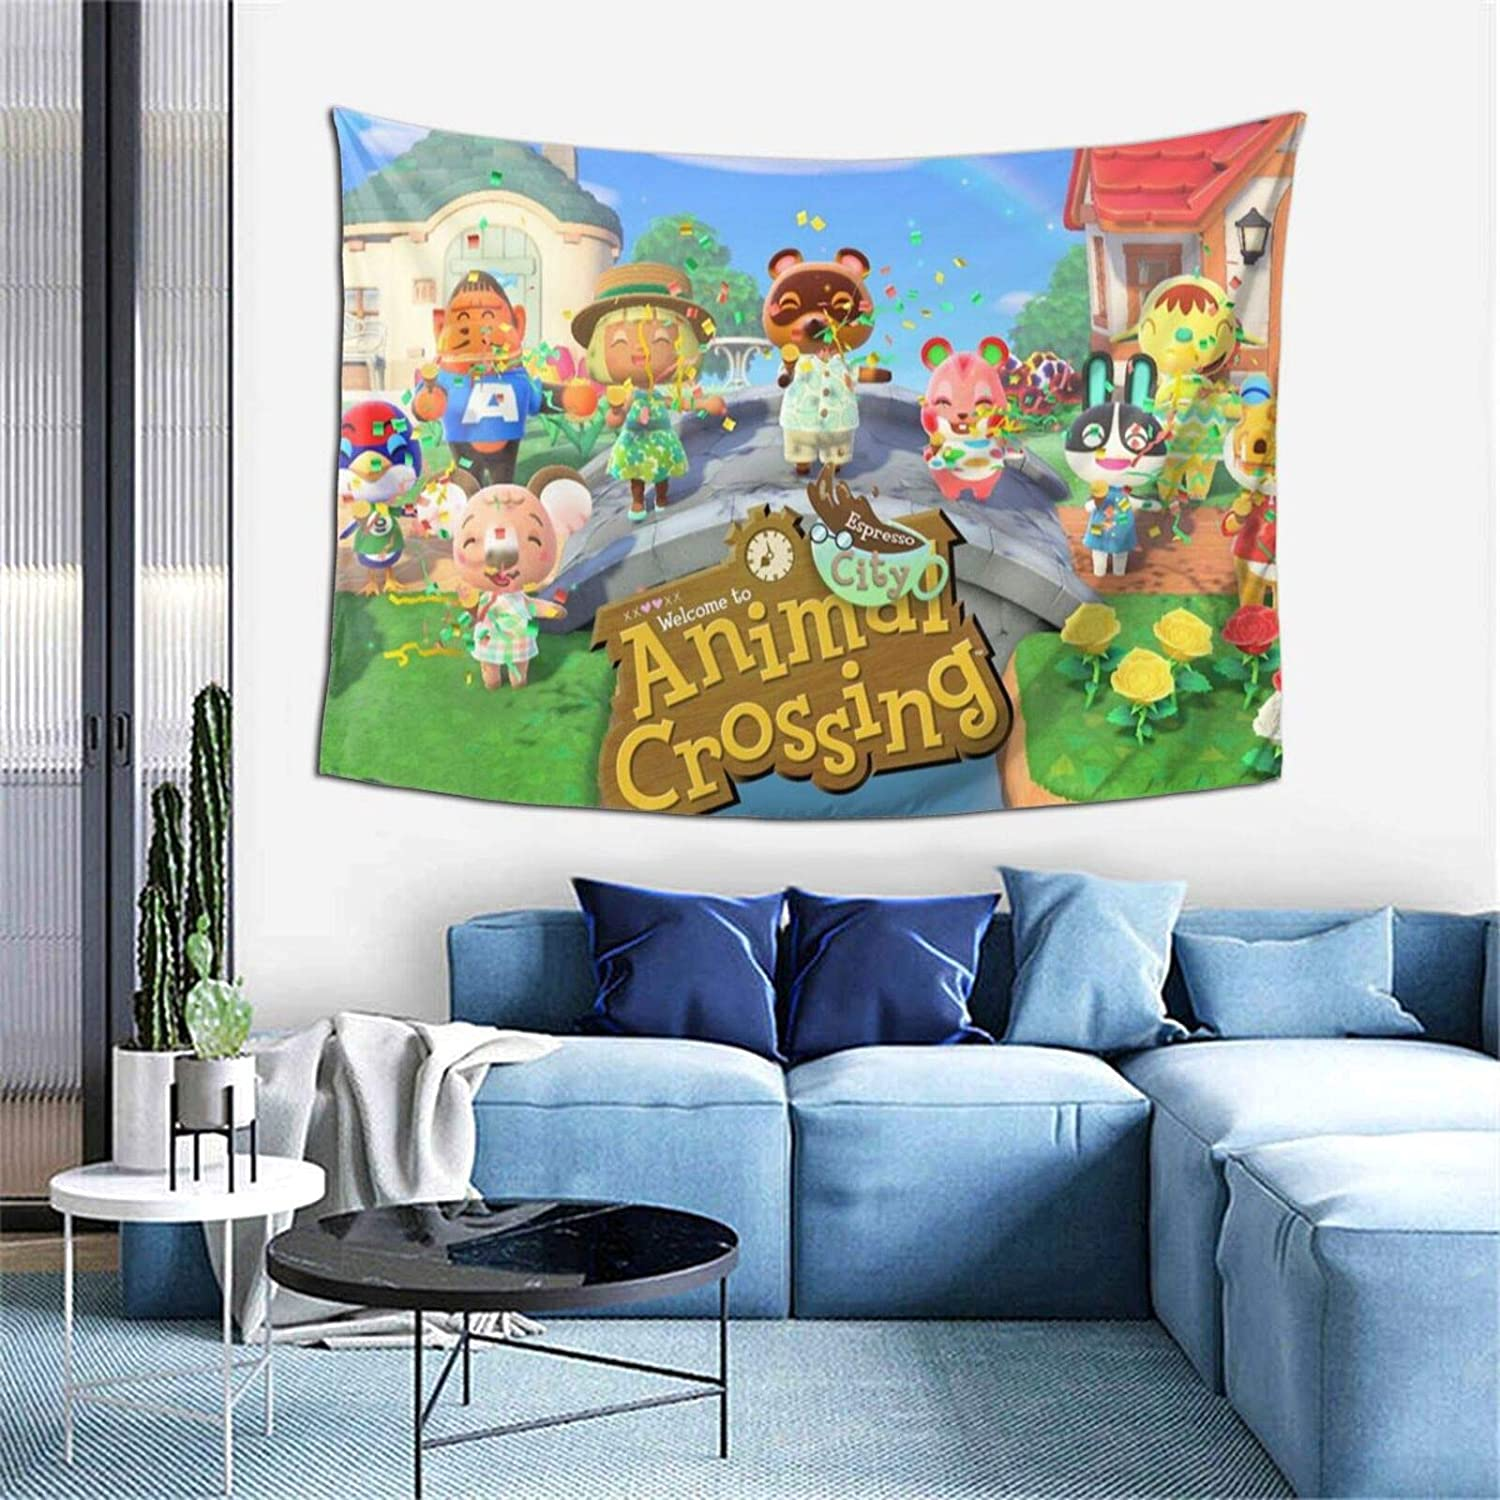 Bestrgi Fashion Tapestry A-ni-m-al Wall Decor Cro-ss-ing Tapestry Hanging for Adult Kids Gifts Art Home Decorations Bedroom Living Room Office Decorative Tapestry 60x40 Inches Cover